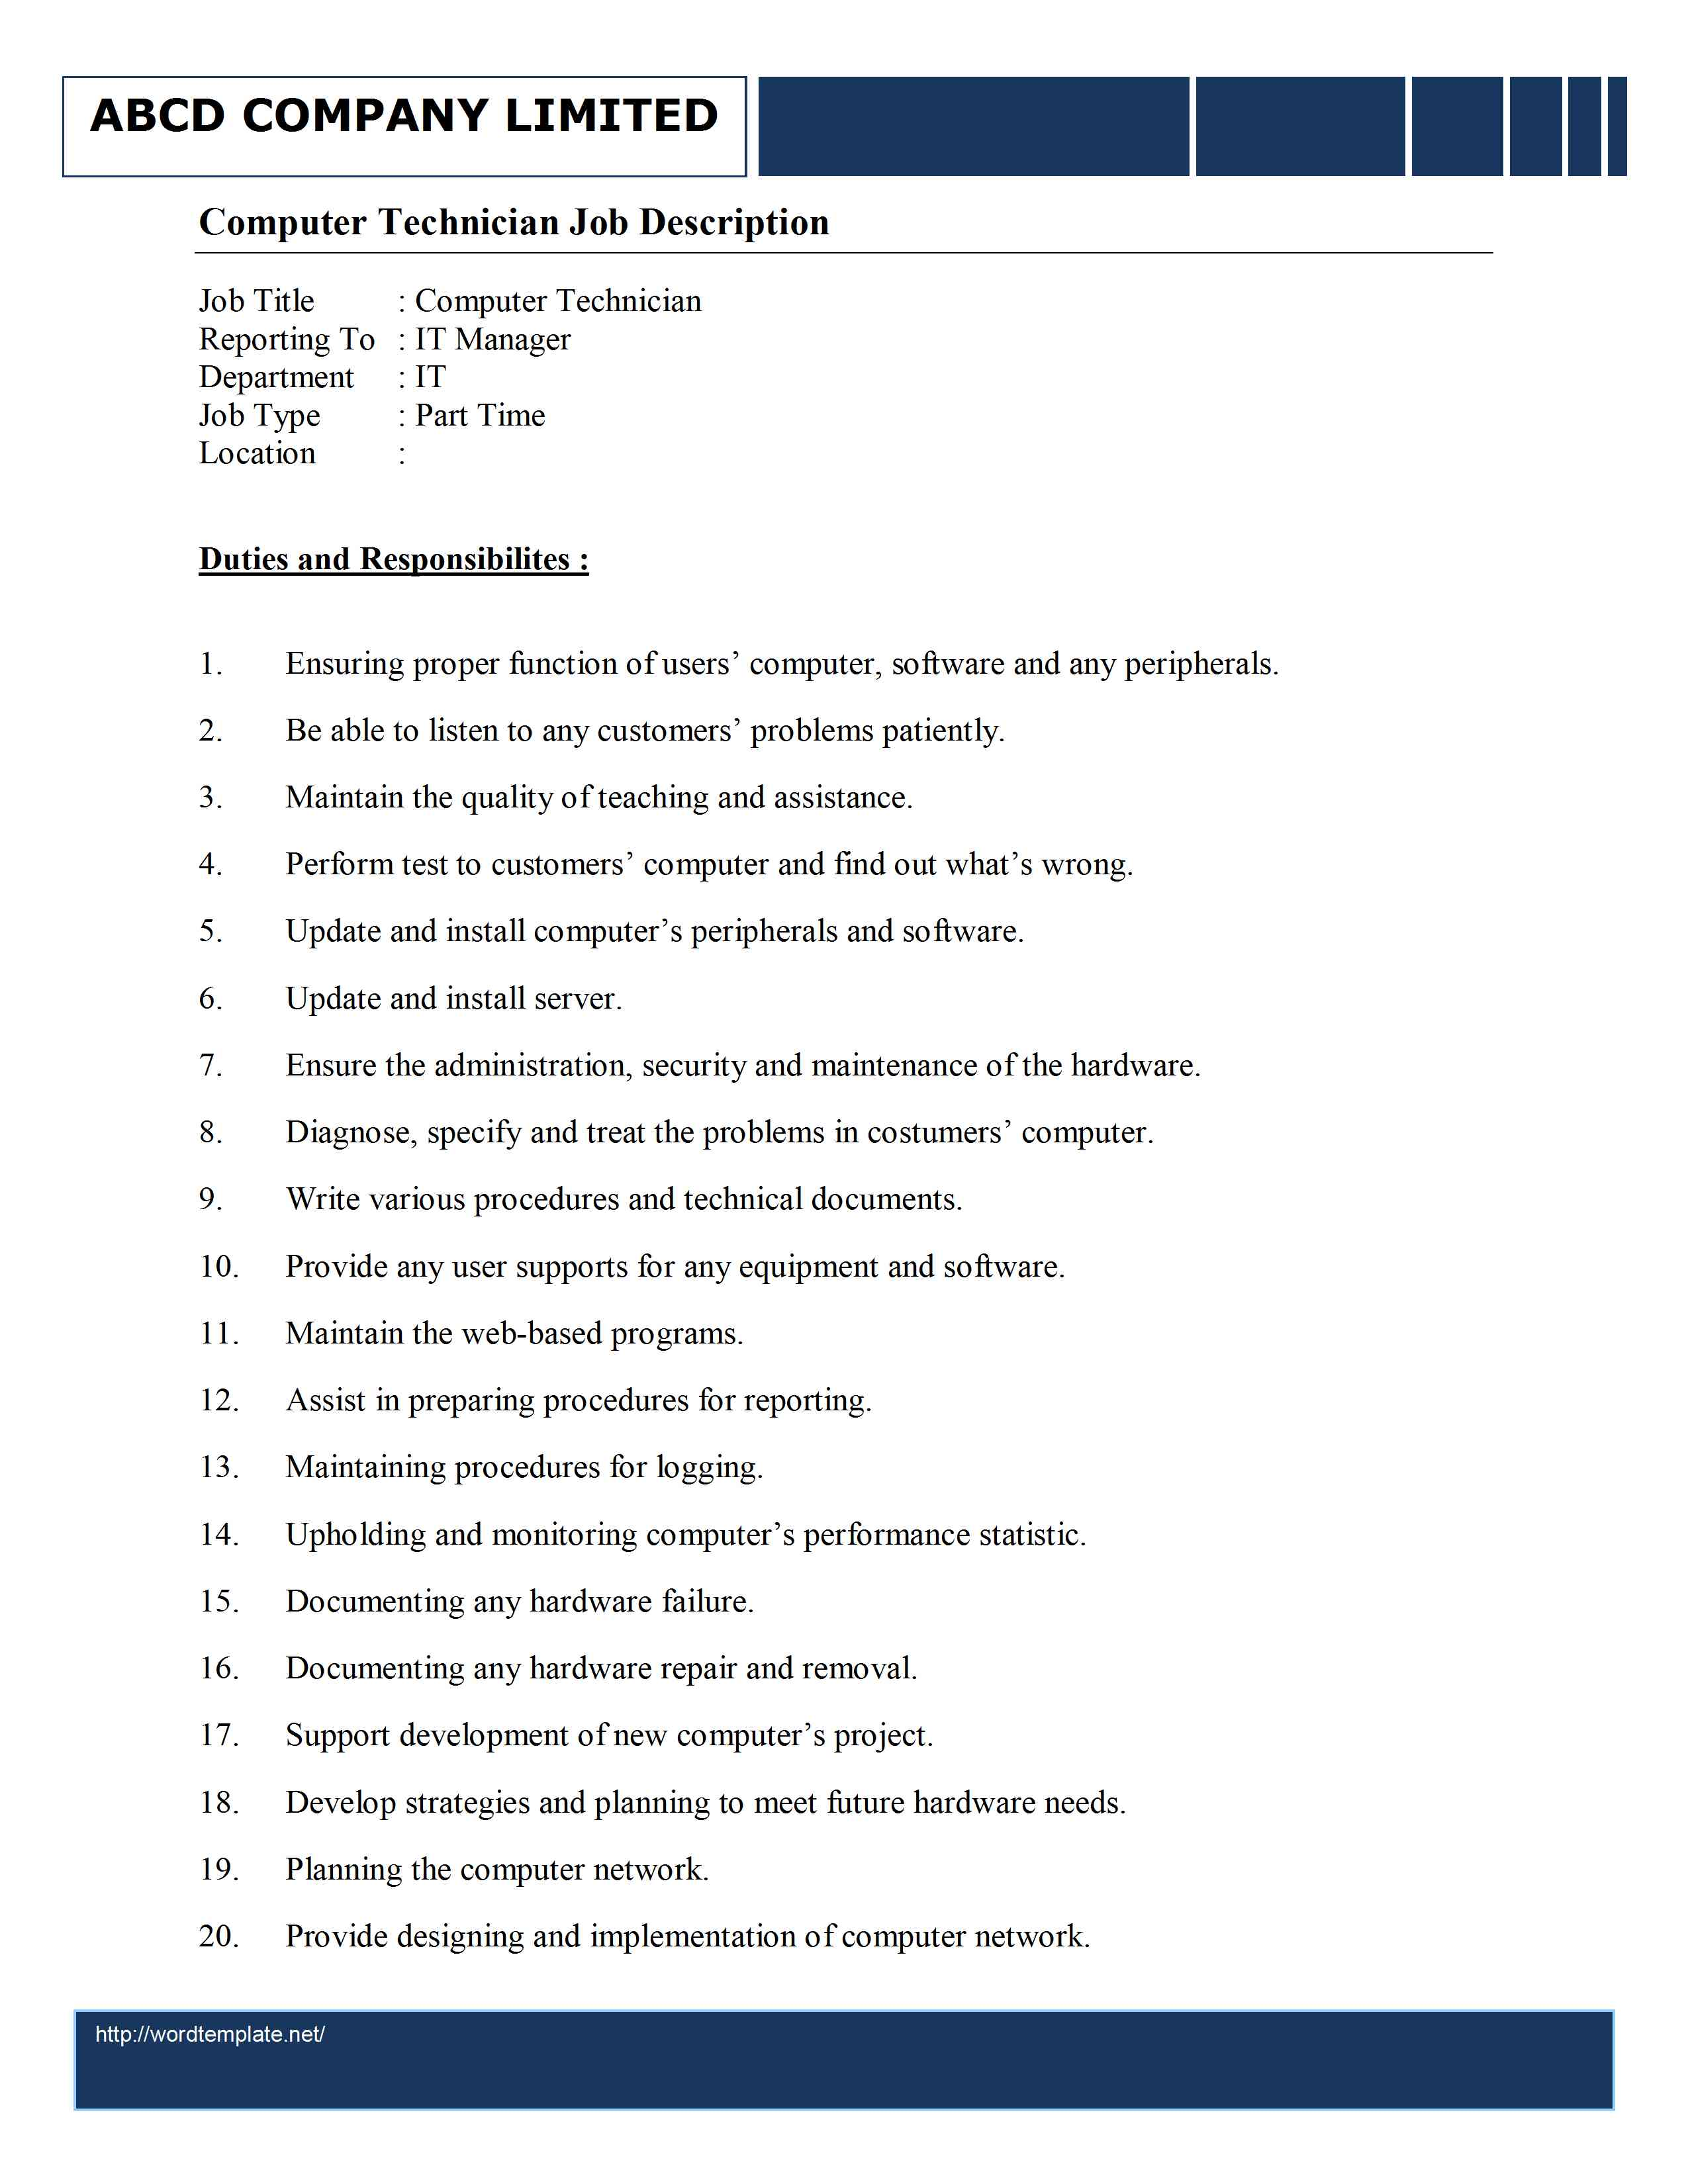 Computer Technician Resume Objectives Resume Sample Computer